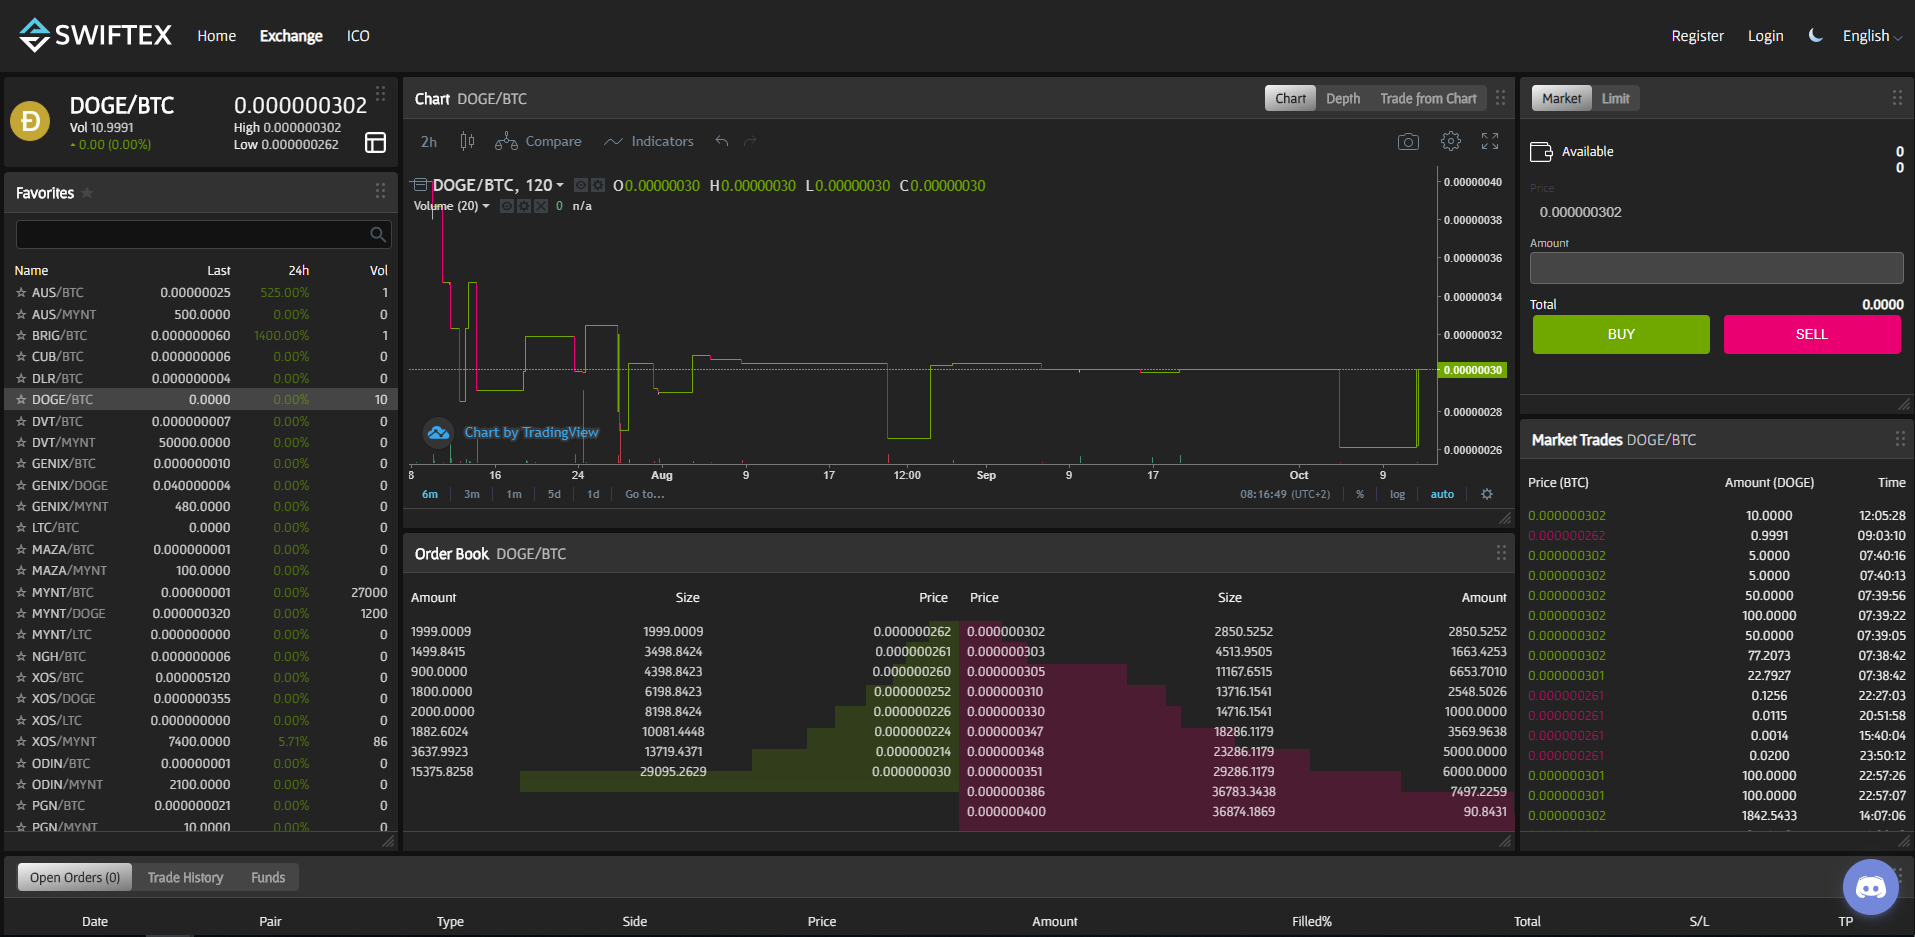 Swiftex Trading View